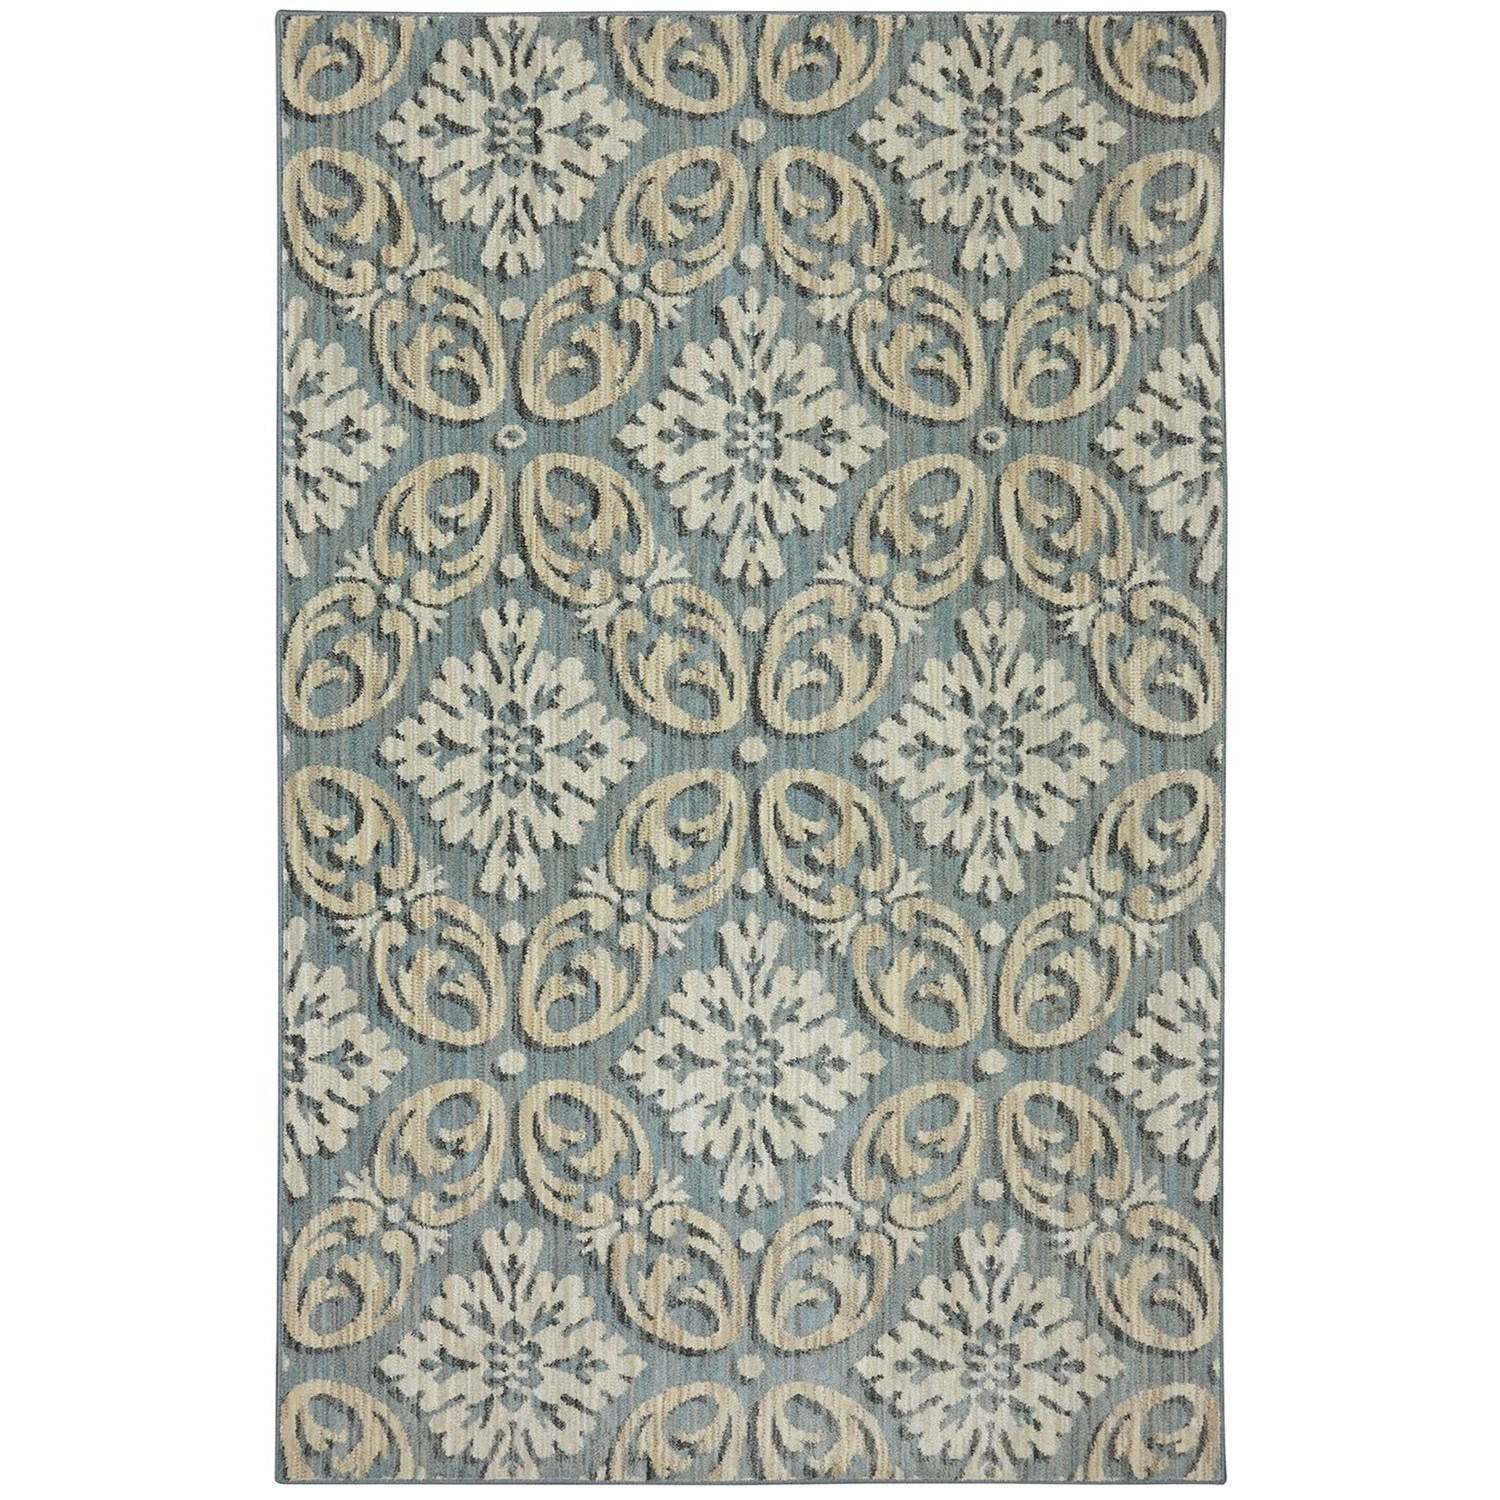 Karastan Rugs Euphoria 8'x11' Findon Bay Blue Rug - Item Number: 90271 55002 096132